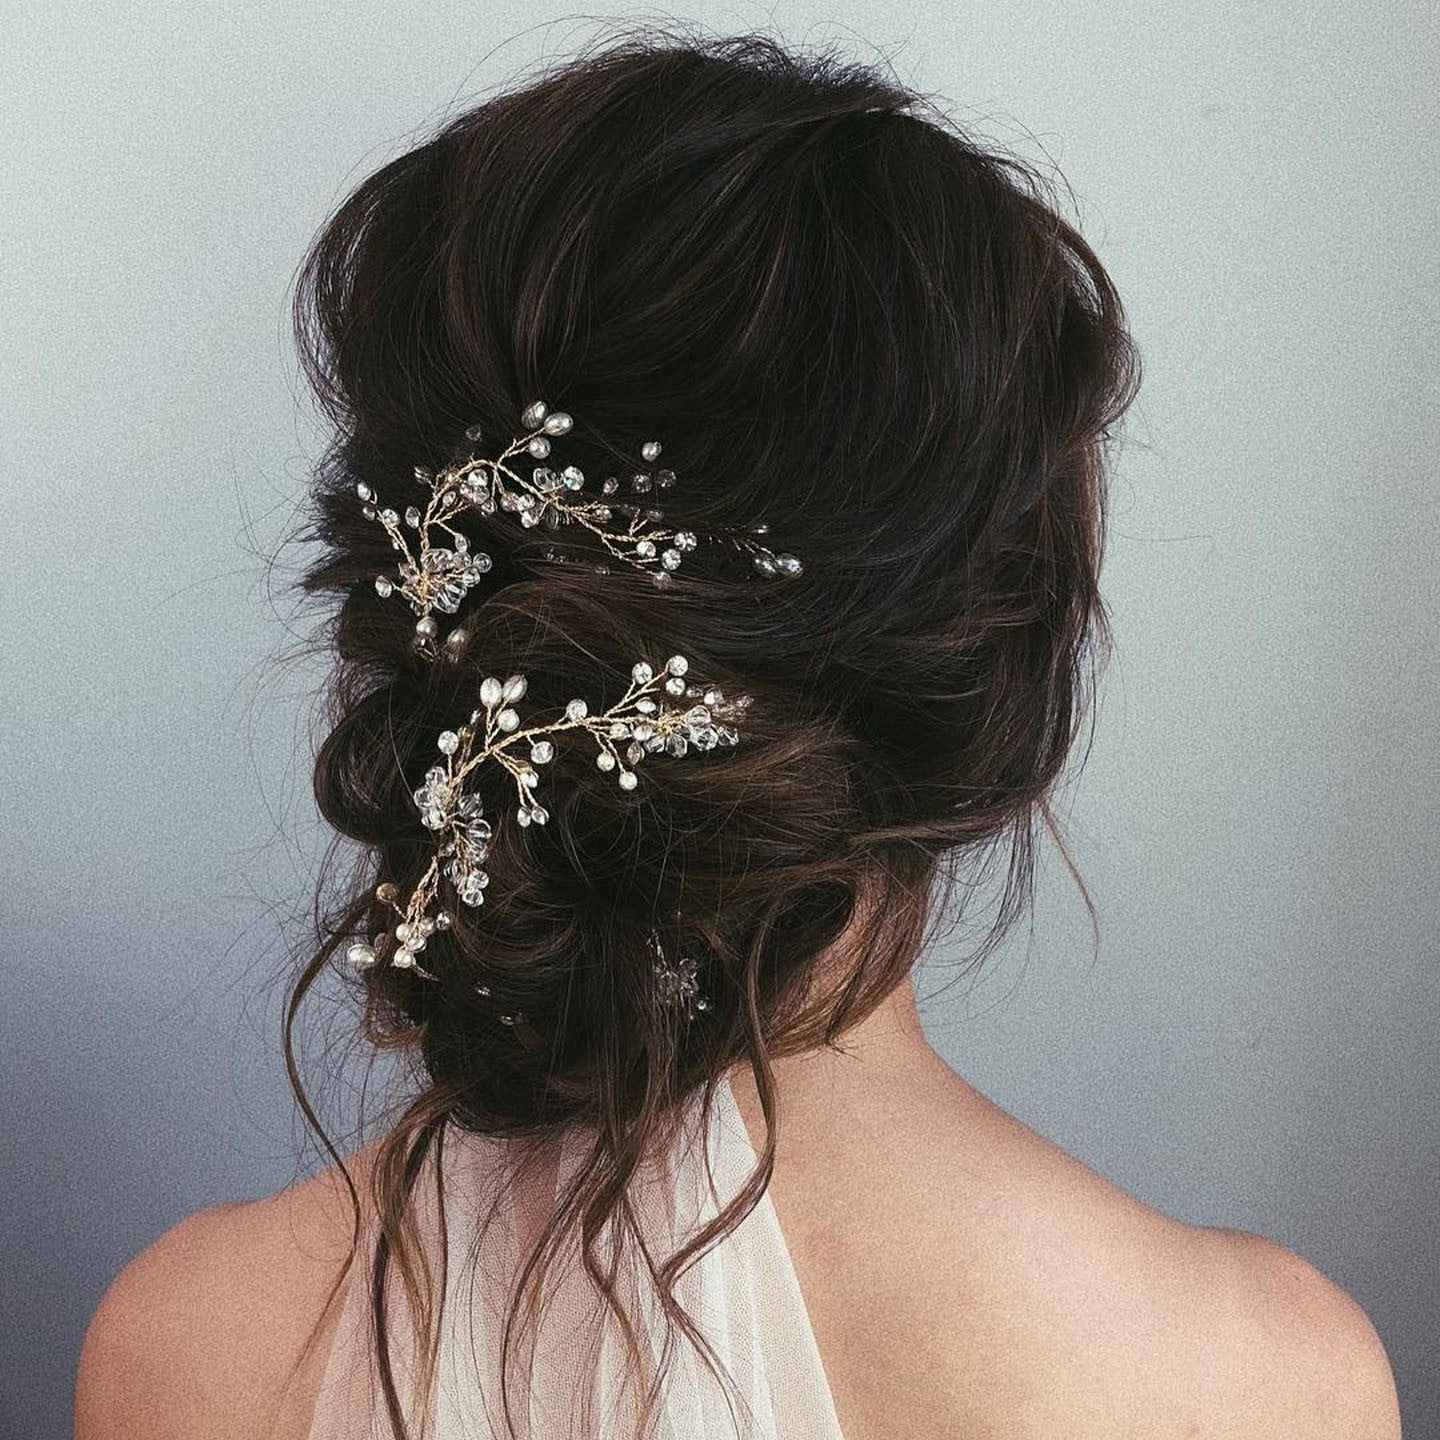 Messy bun wedding hair popsugar beauty photo 14 junglespirit